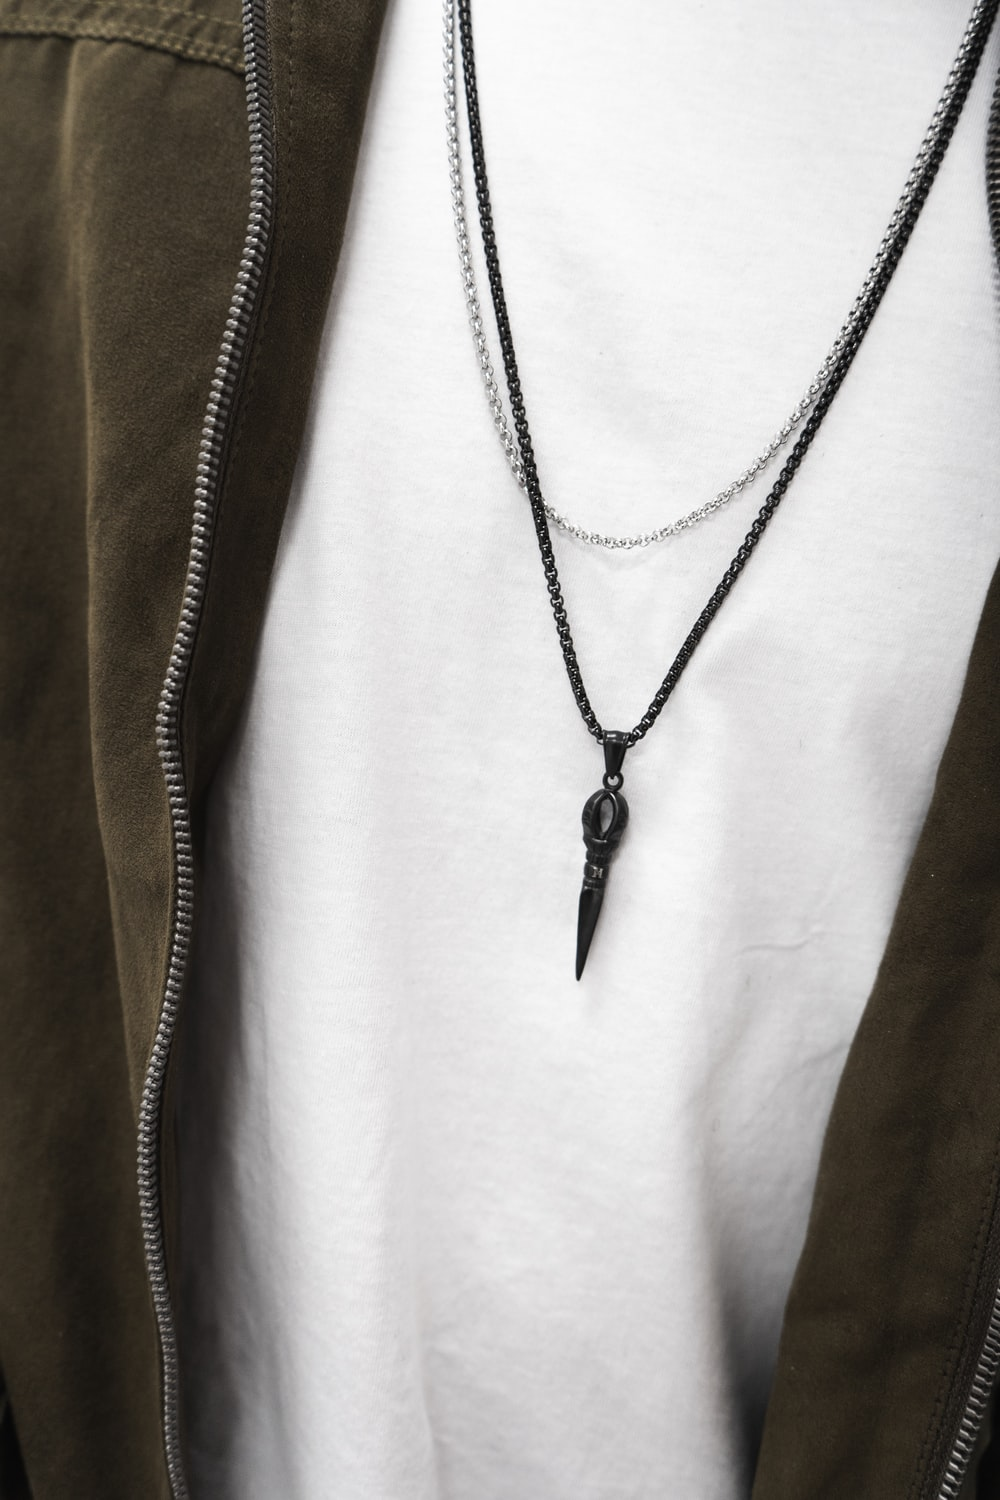 person wearing black necklace